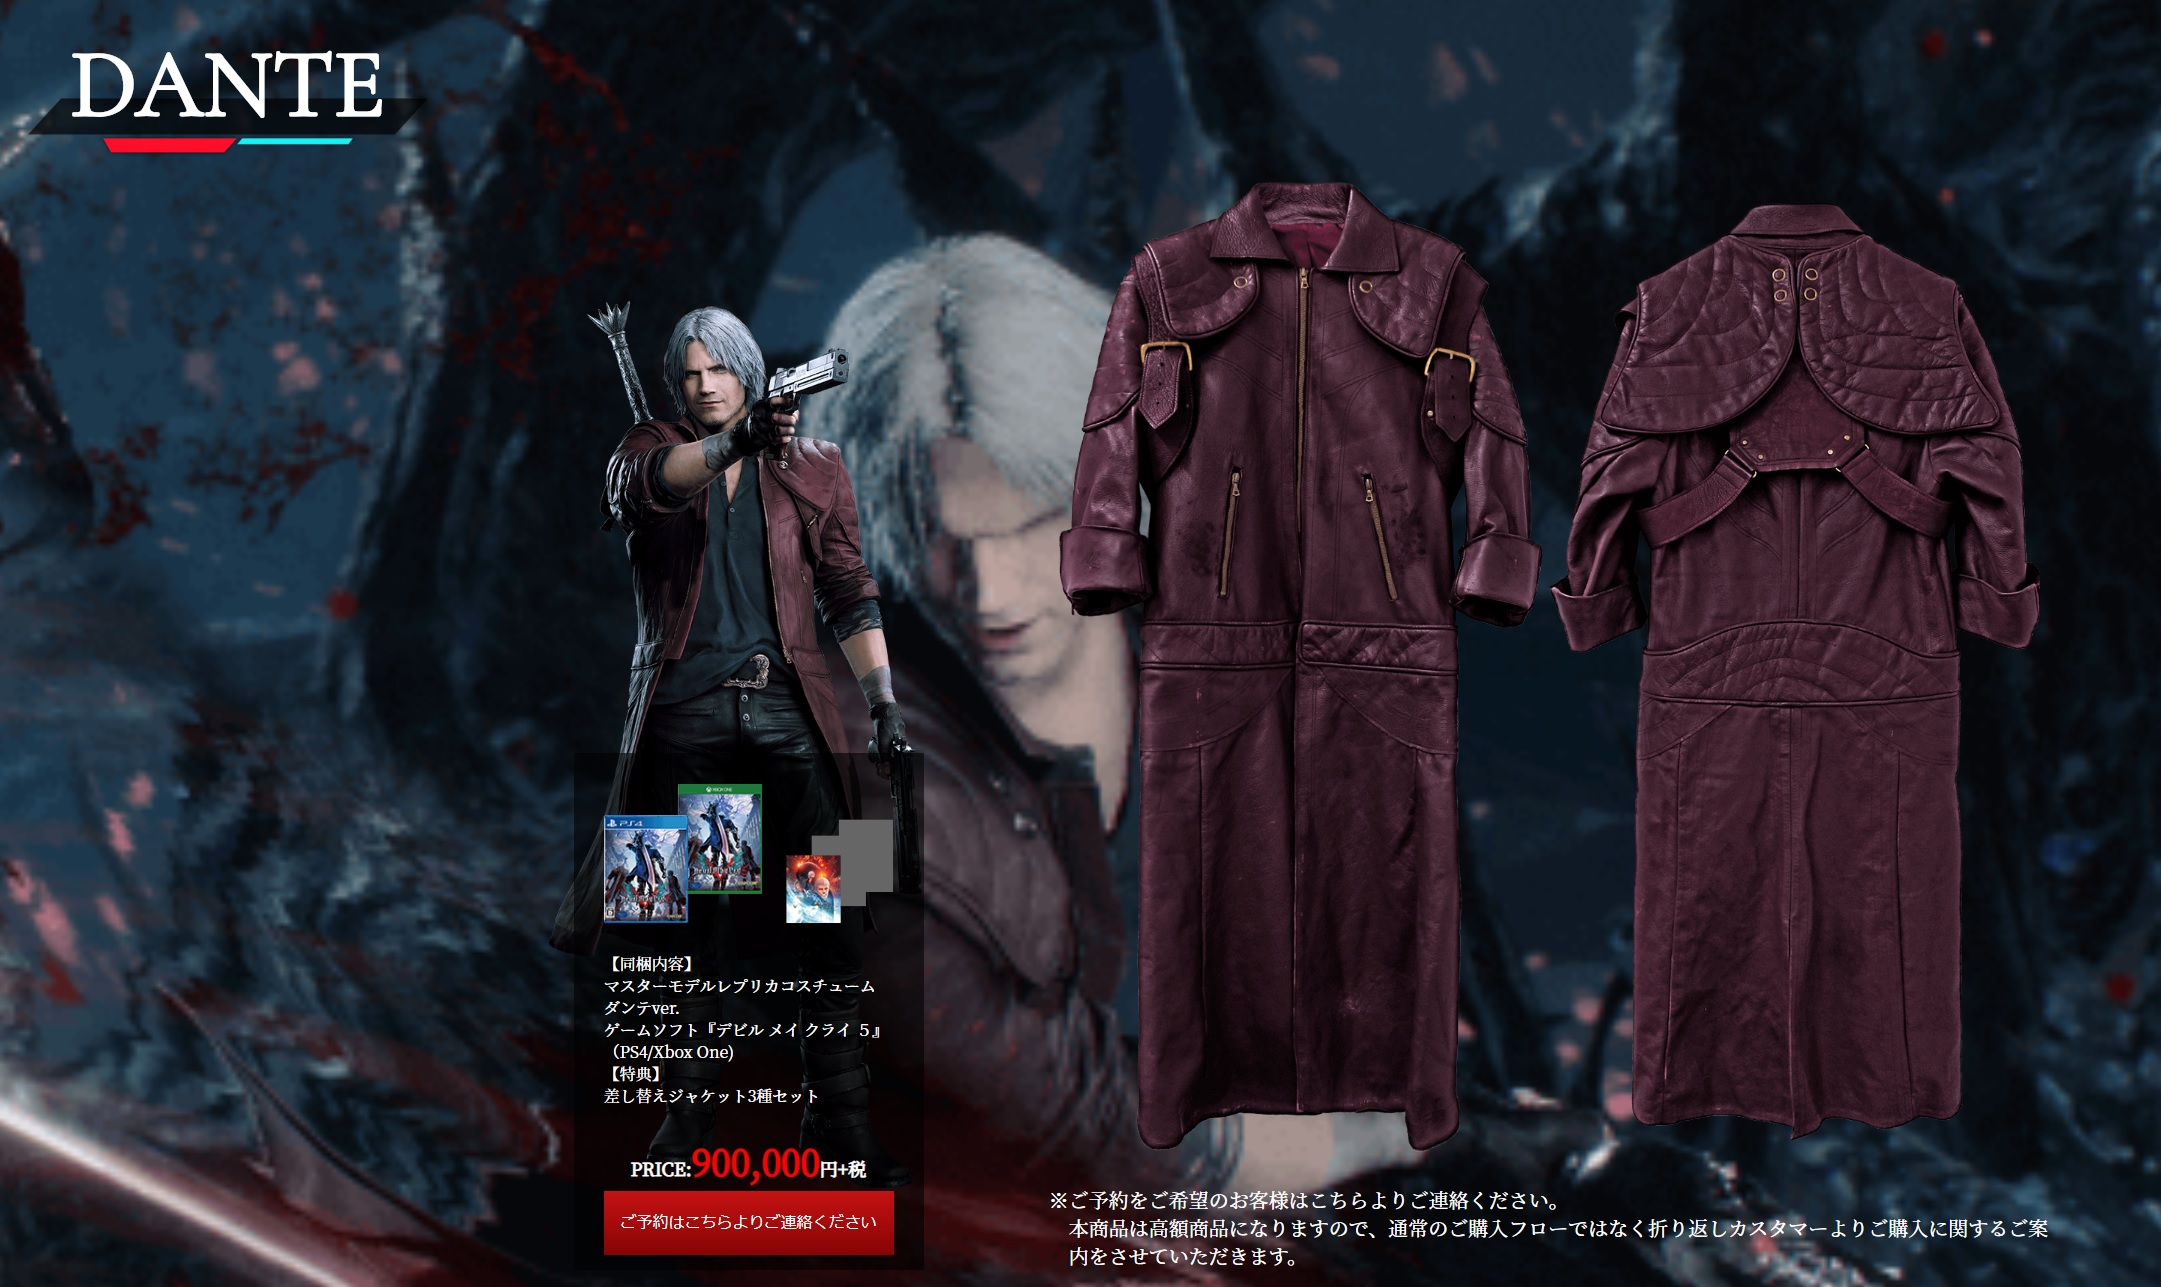 $8,000 Devil May Cry 5 special edition comes with Dante's red